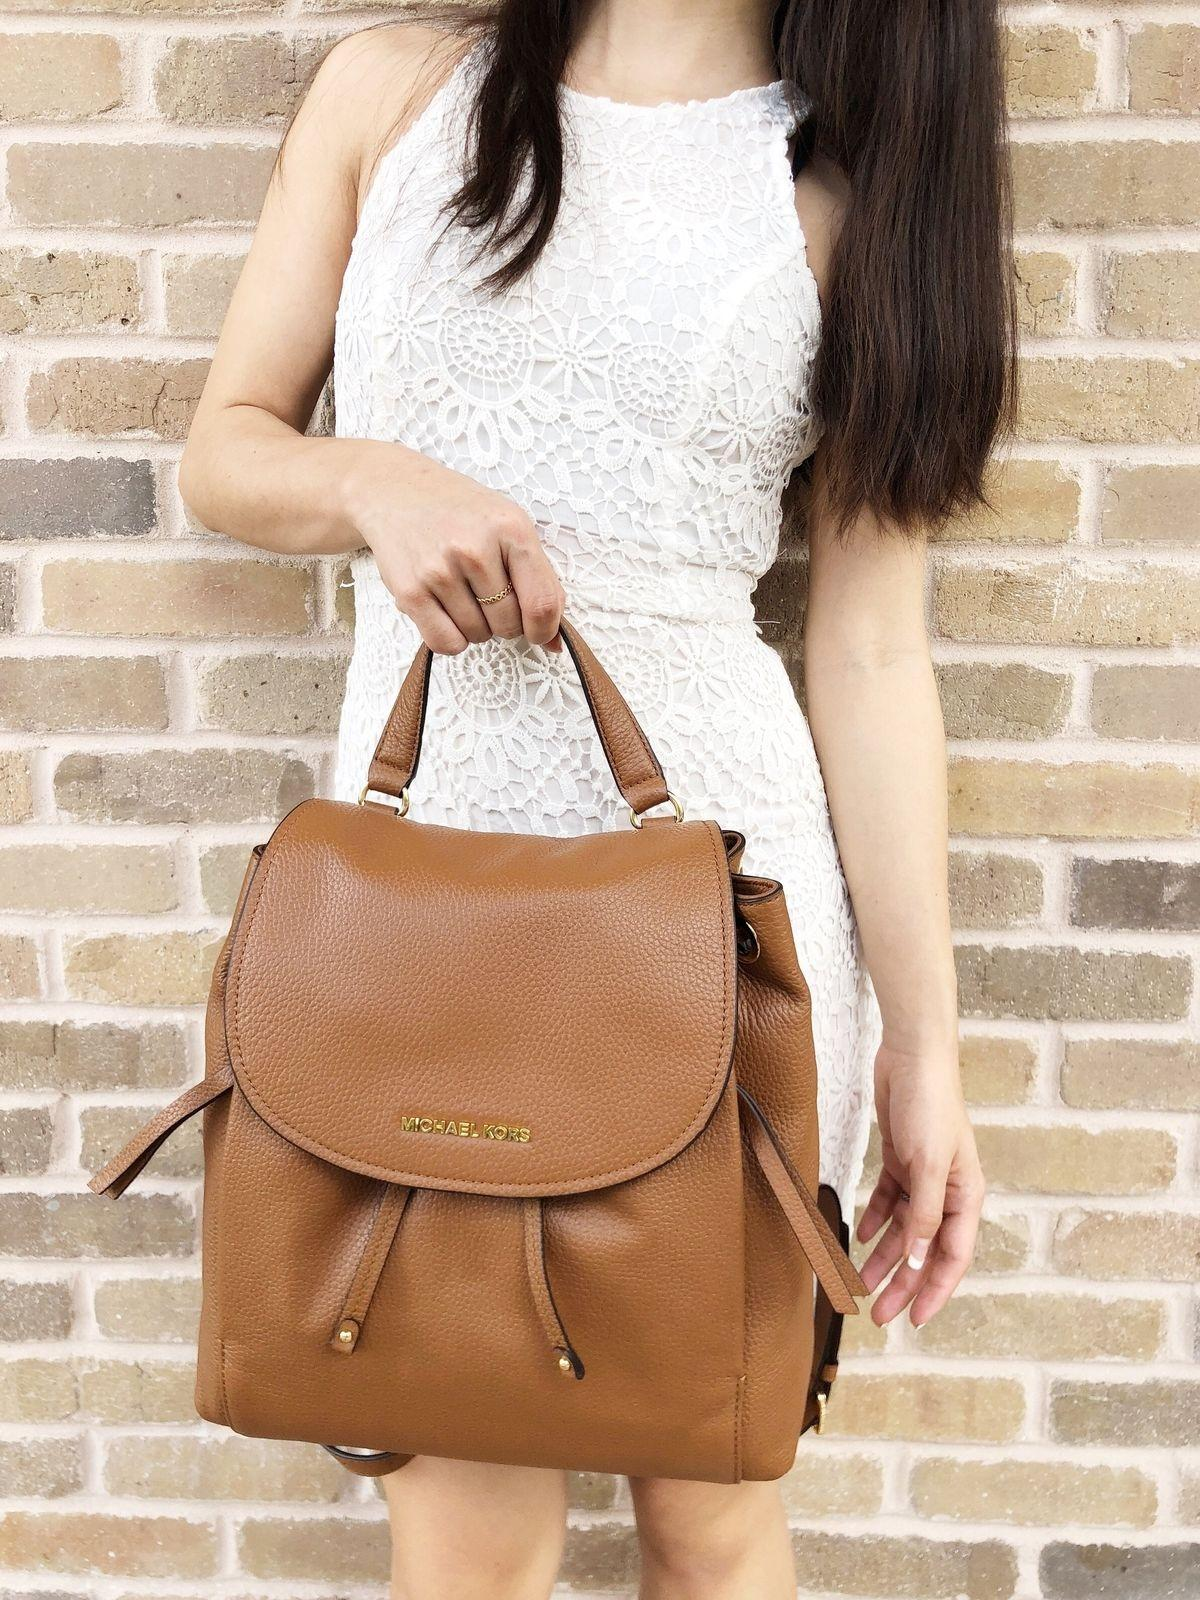 e398d5091a3b76 ... best price michael kors riley large luggage brown leather backpack  tradesy 2009a 137b5